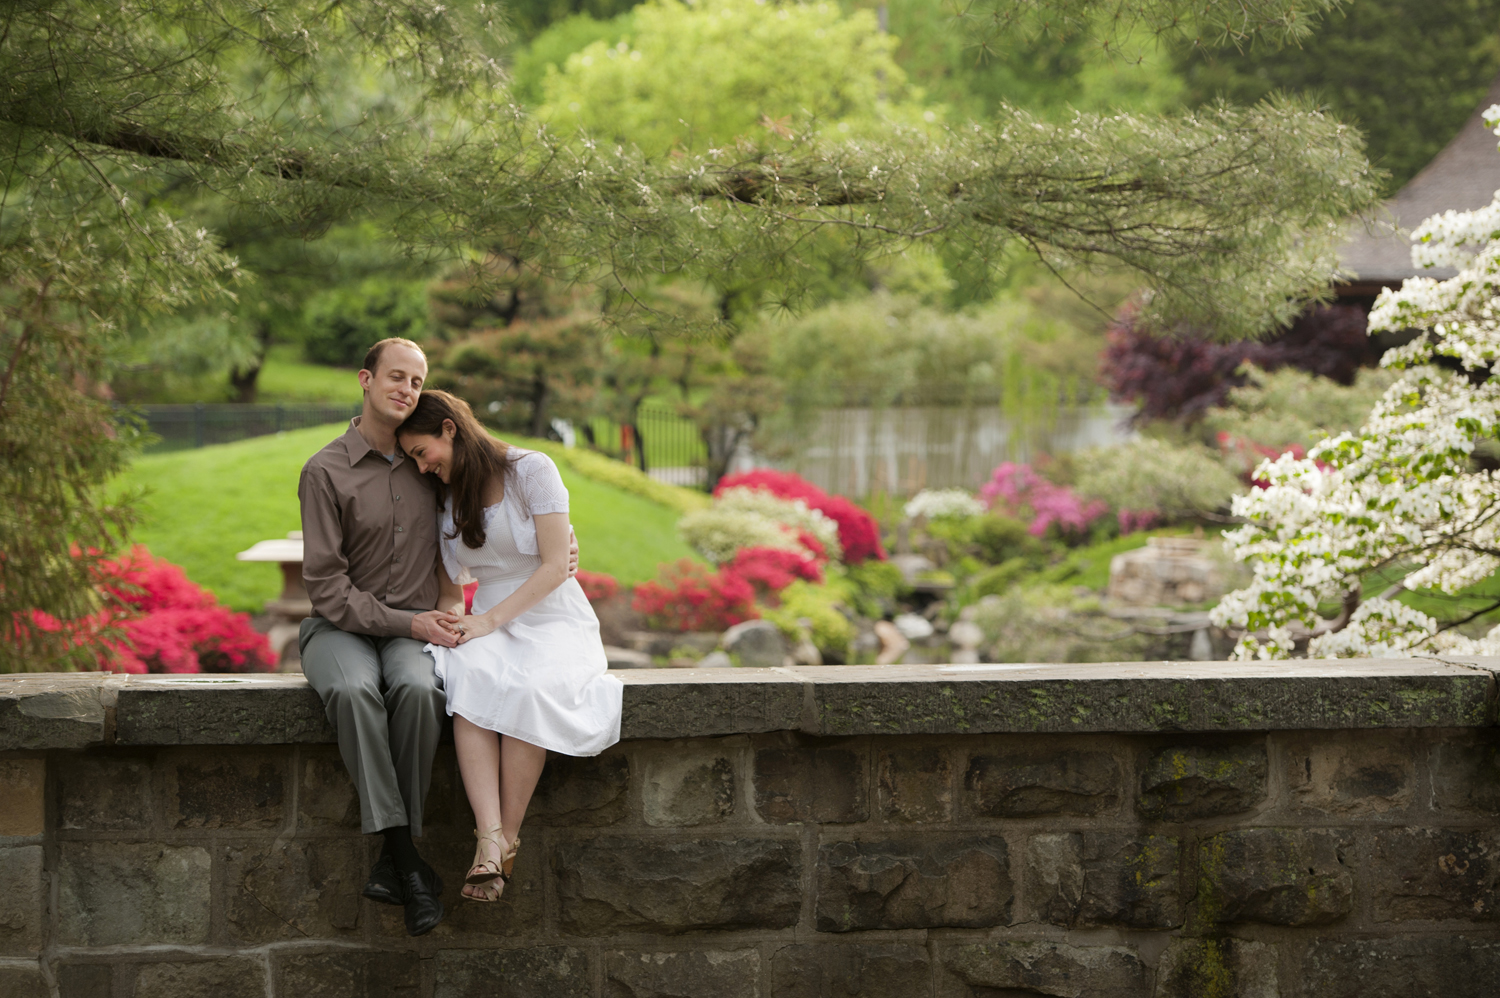 engagement session at Philadelphia's Horticulture Center in Fairmount Park Conservancy.